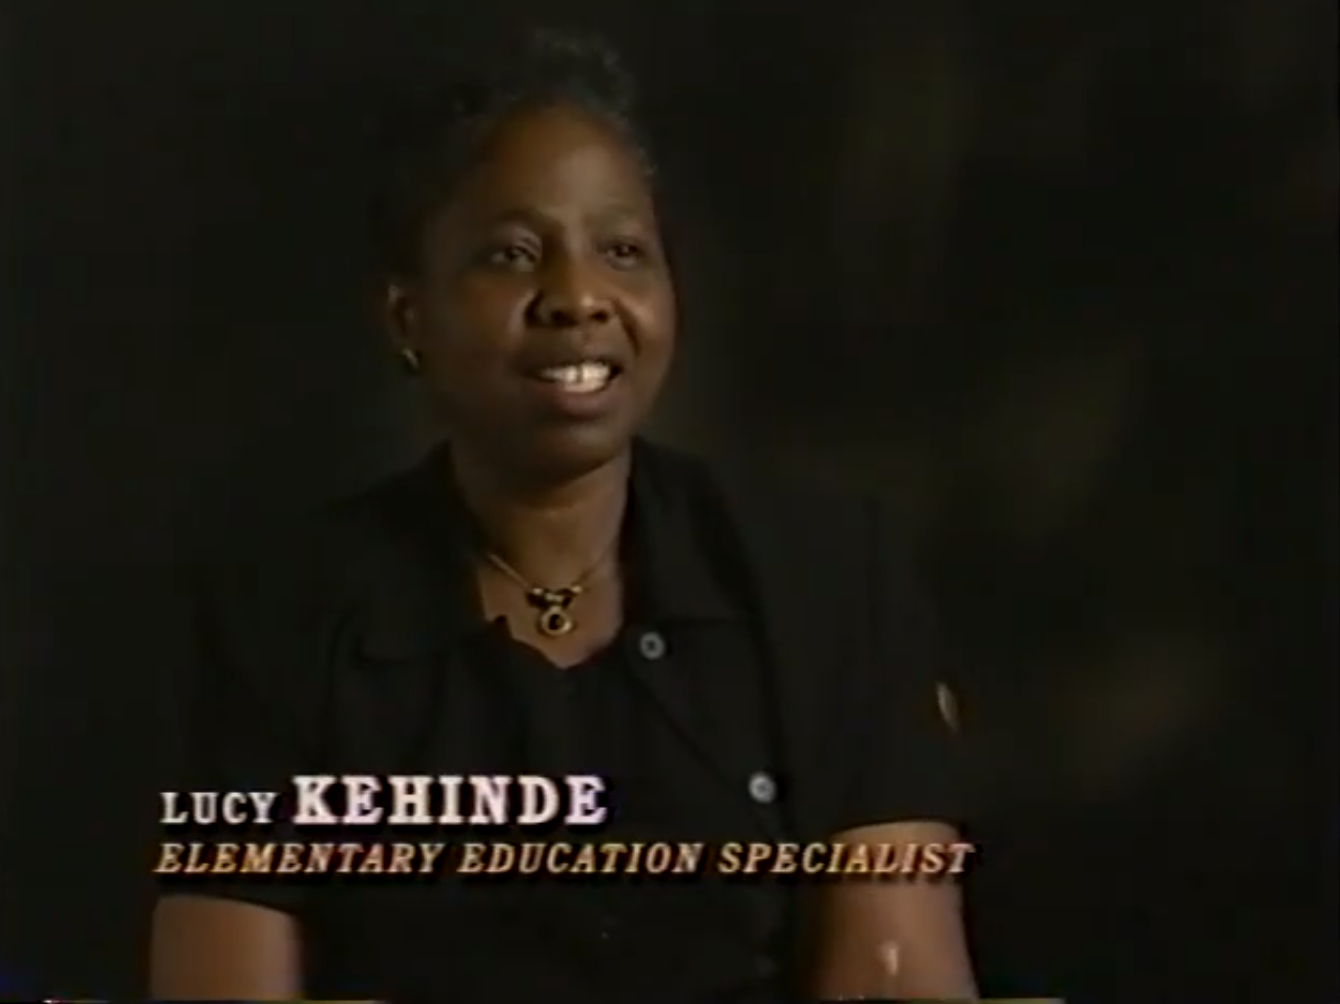 Lucy Kehinde